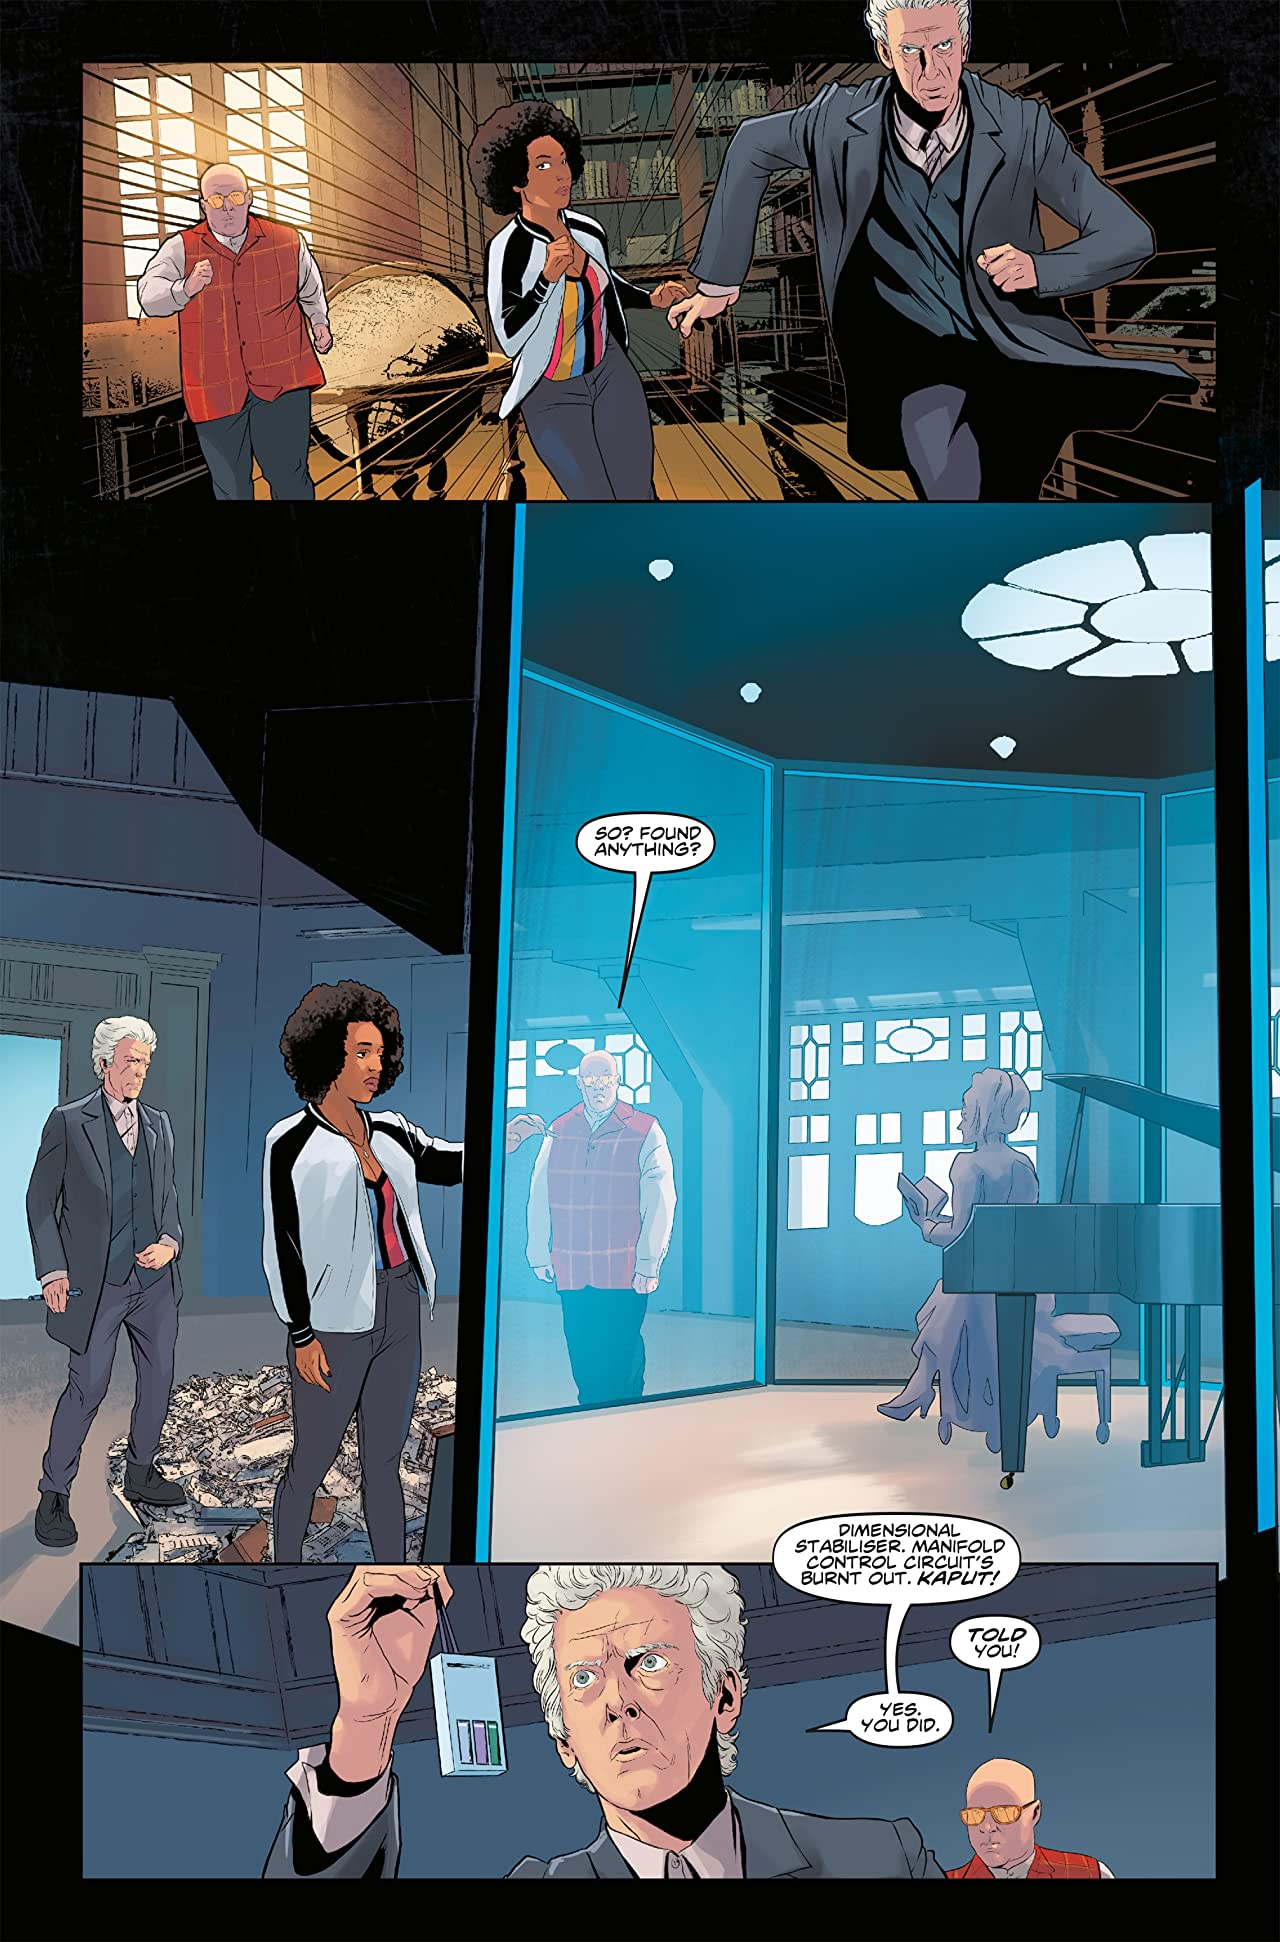 Doctor Who: The Twelfth Doctor #3.9